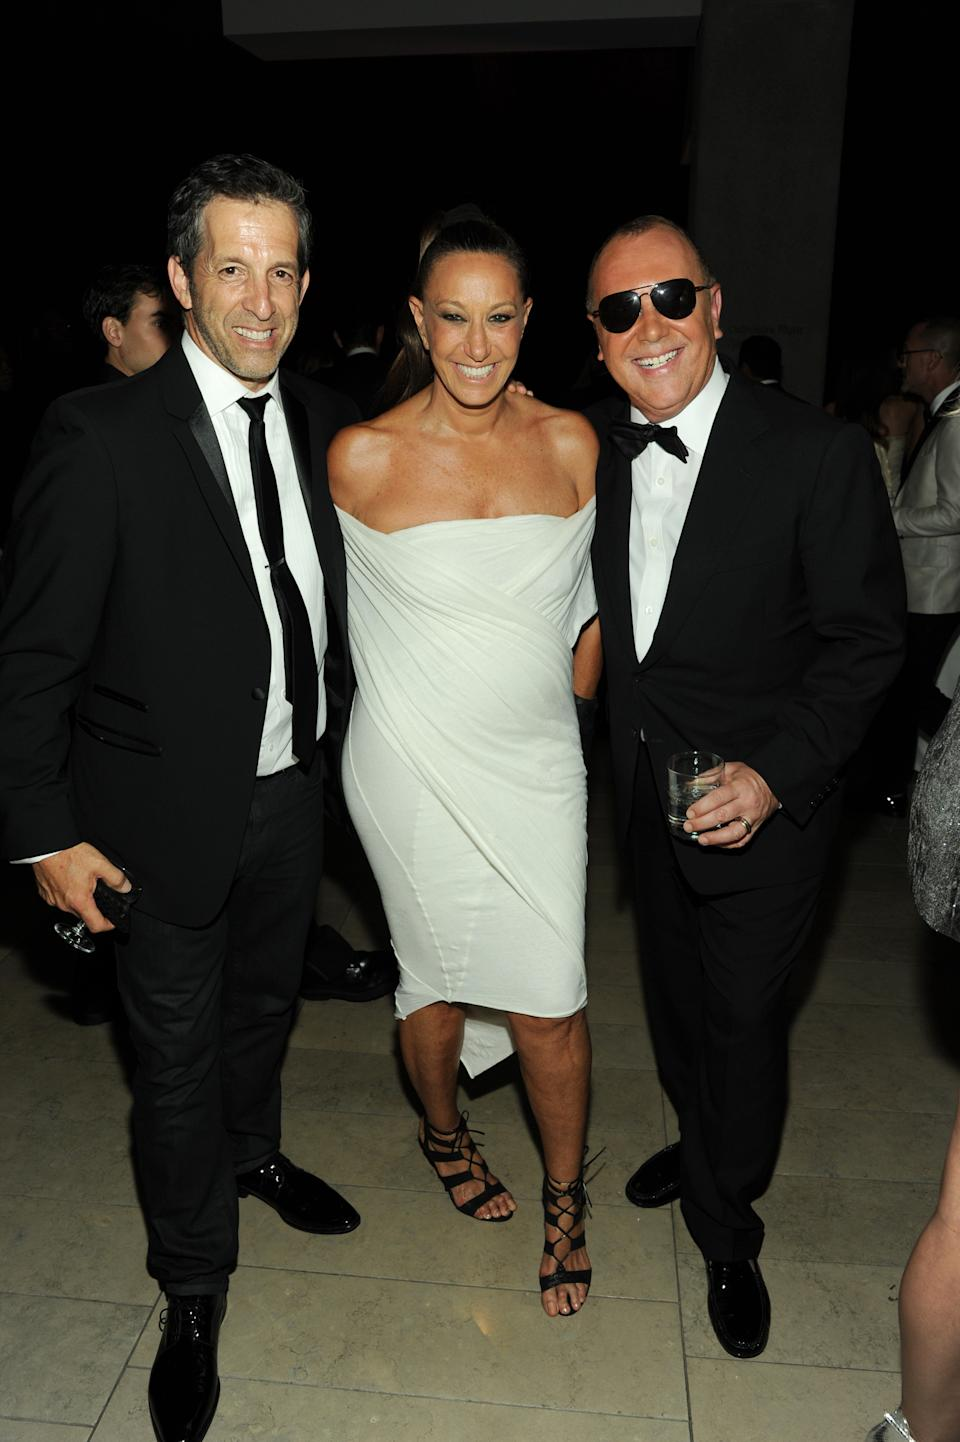 Designers' Kenneth Cole, left, Donna Karan, center and  Michael Kors attend the 2013 CFDA Fashion Awards at Alice Tully Hall on Monday, June 3, 2013 in New York. (Photo by Evan Agostini/Invision/AP)